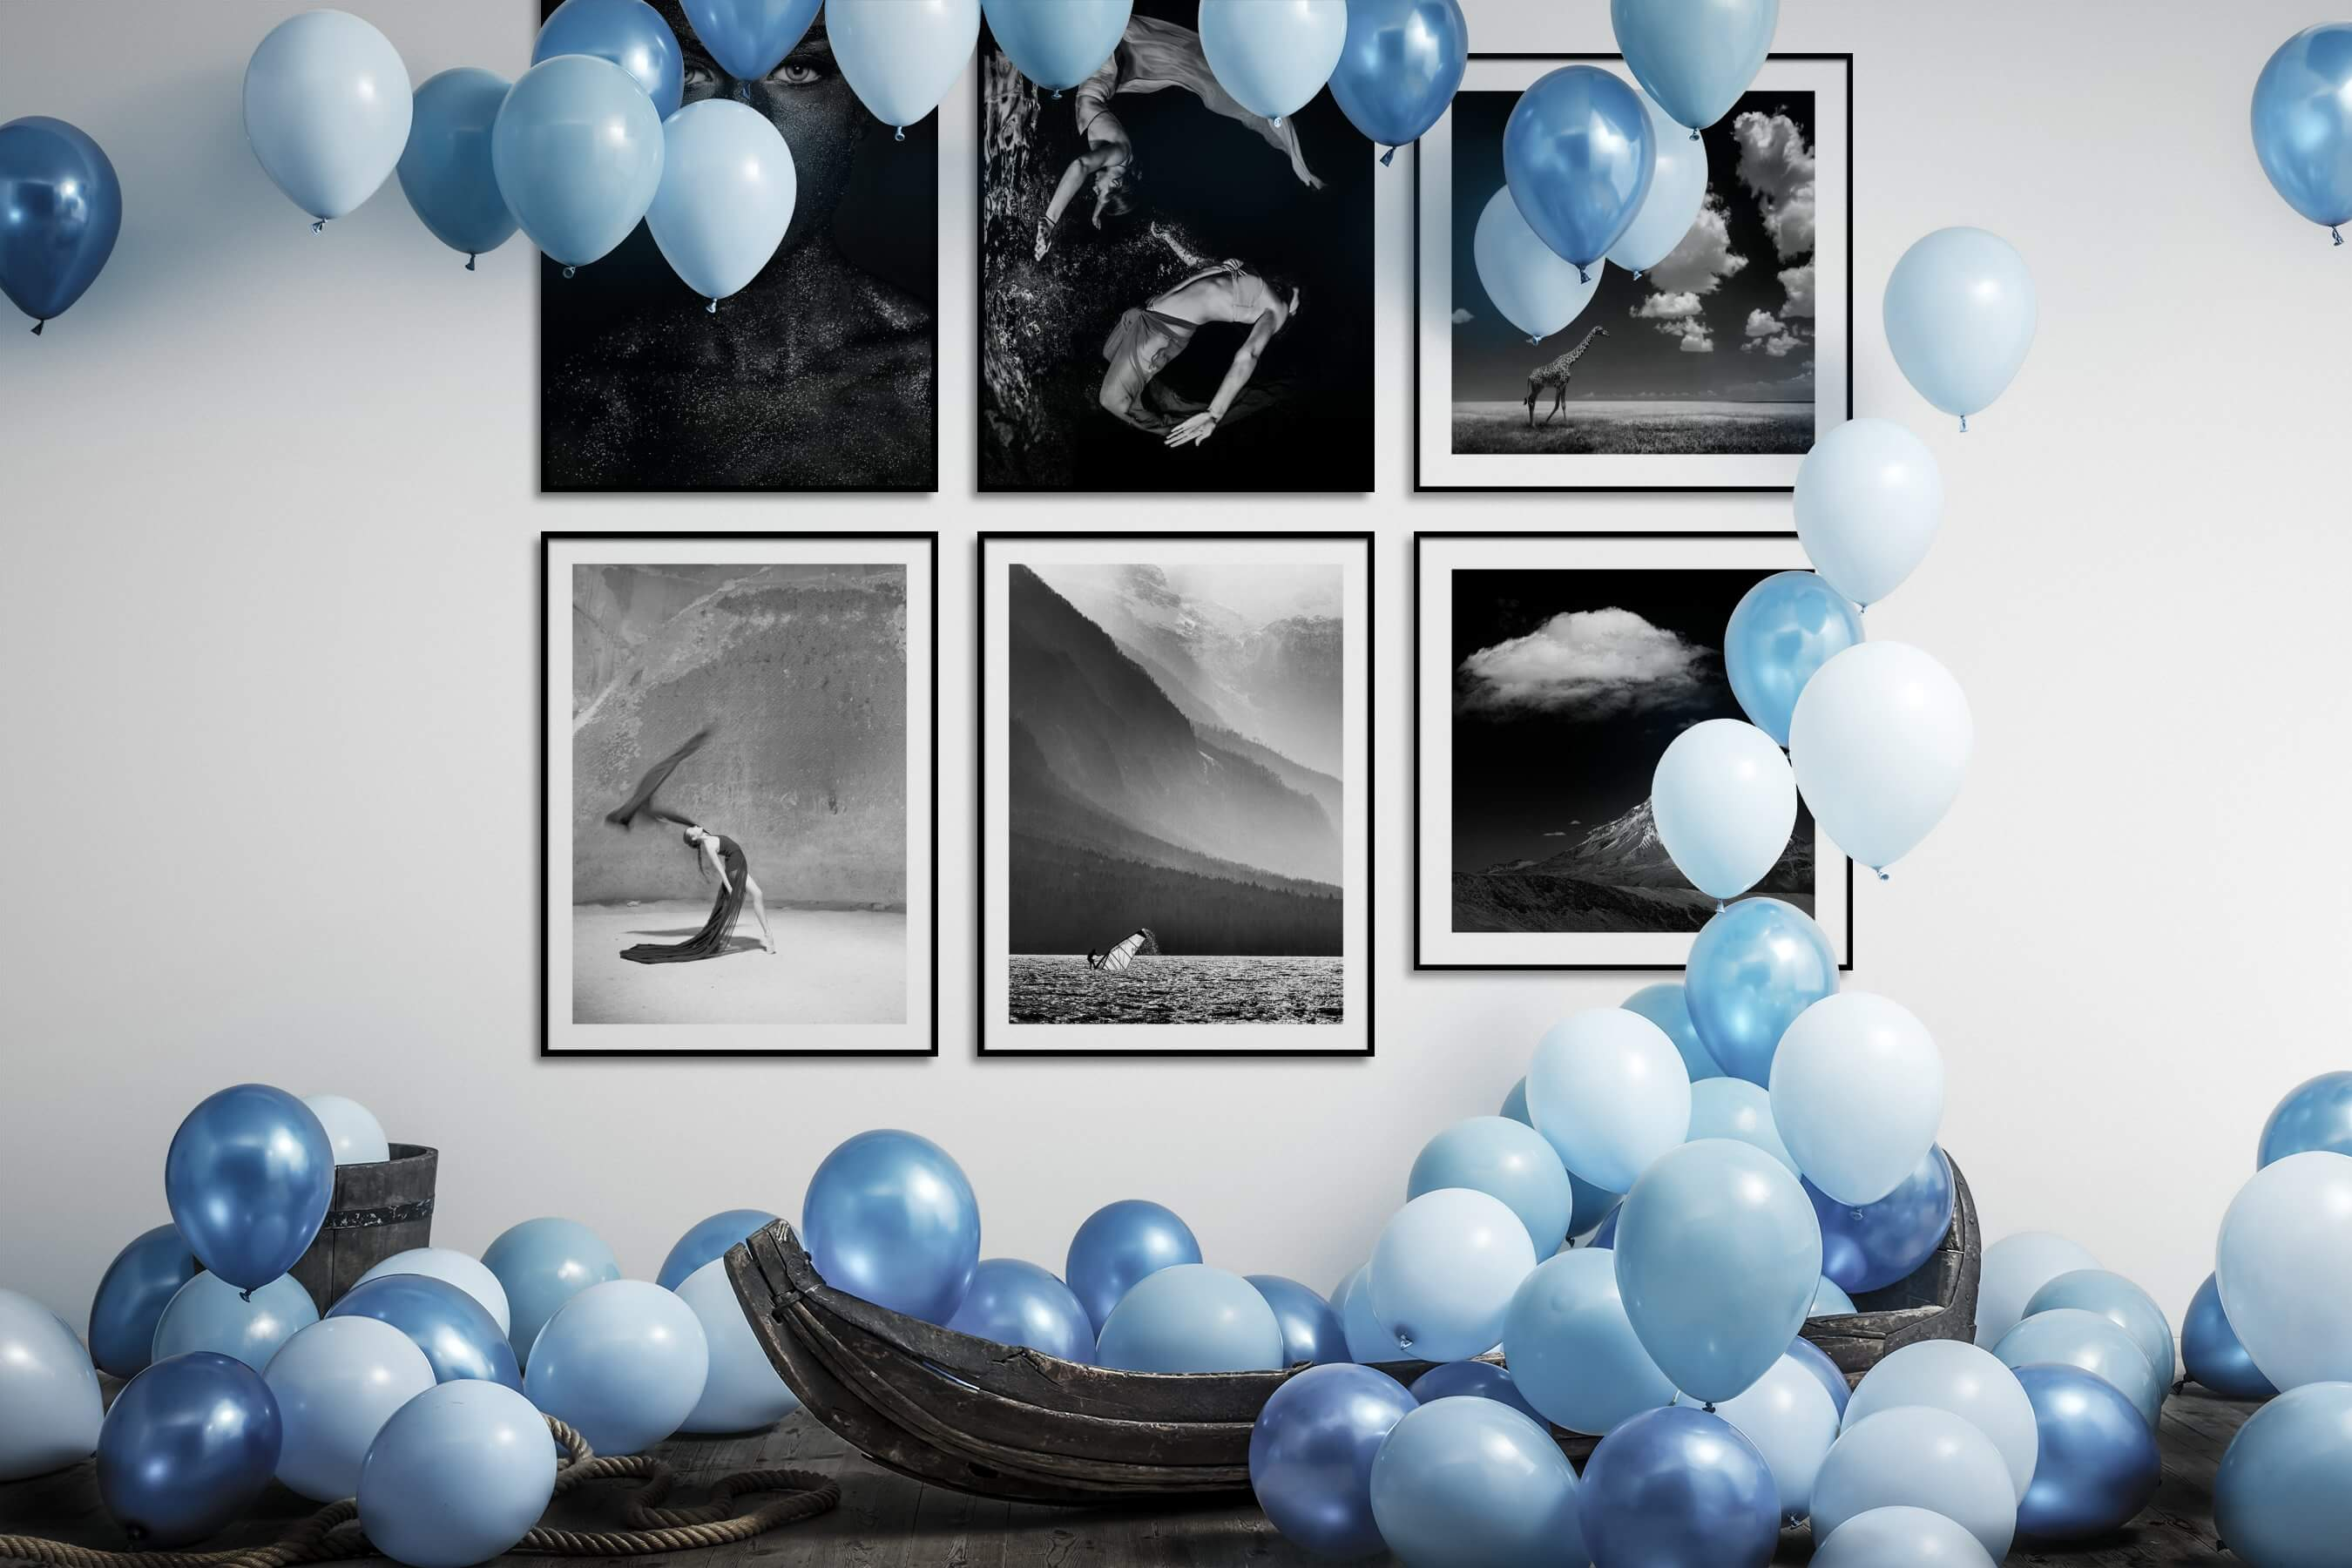 Gallery wall idea with six framed pictures arranged on a wall depicting Fashion & Beauty, Black & White, Dark Tones, Beach & Water, Nature, and Animals